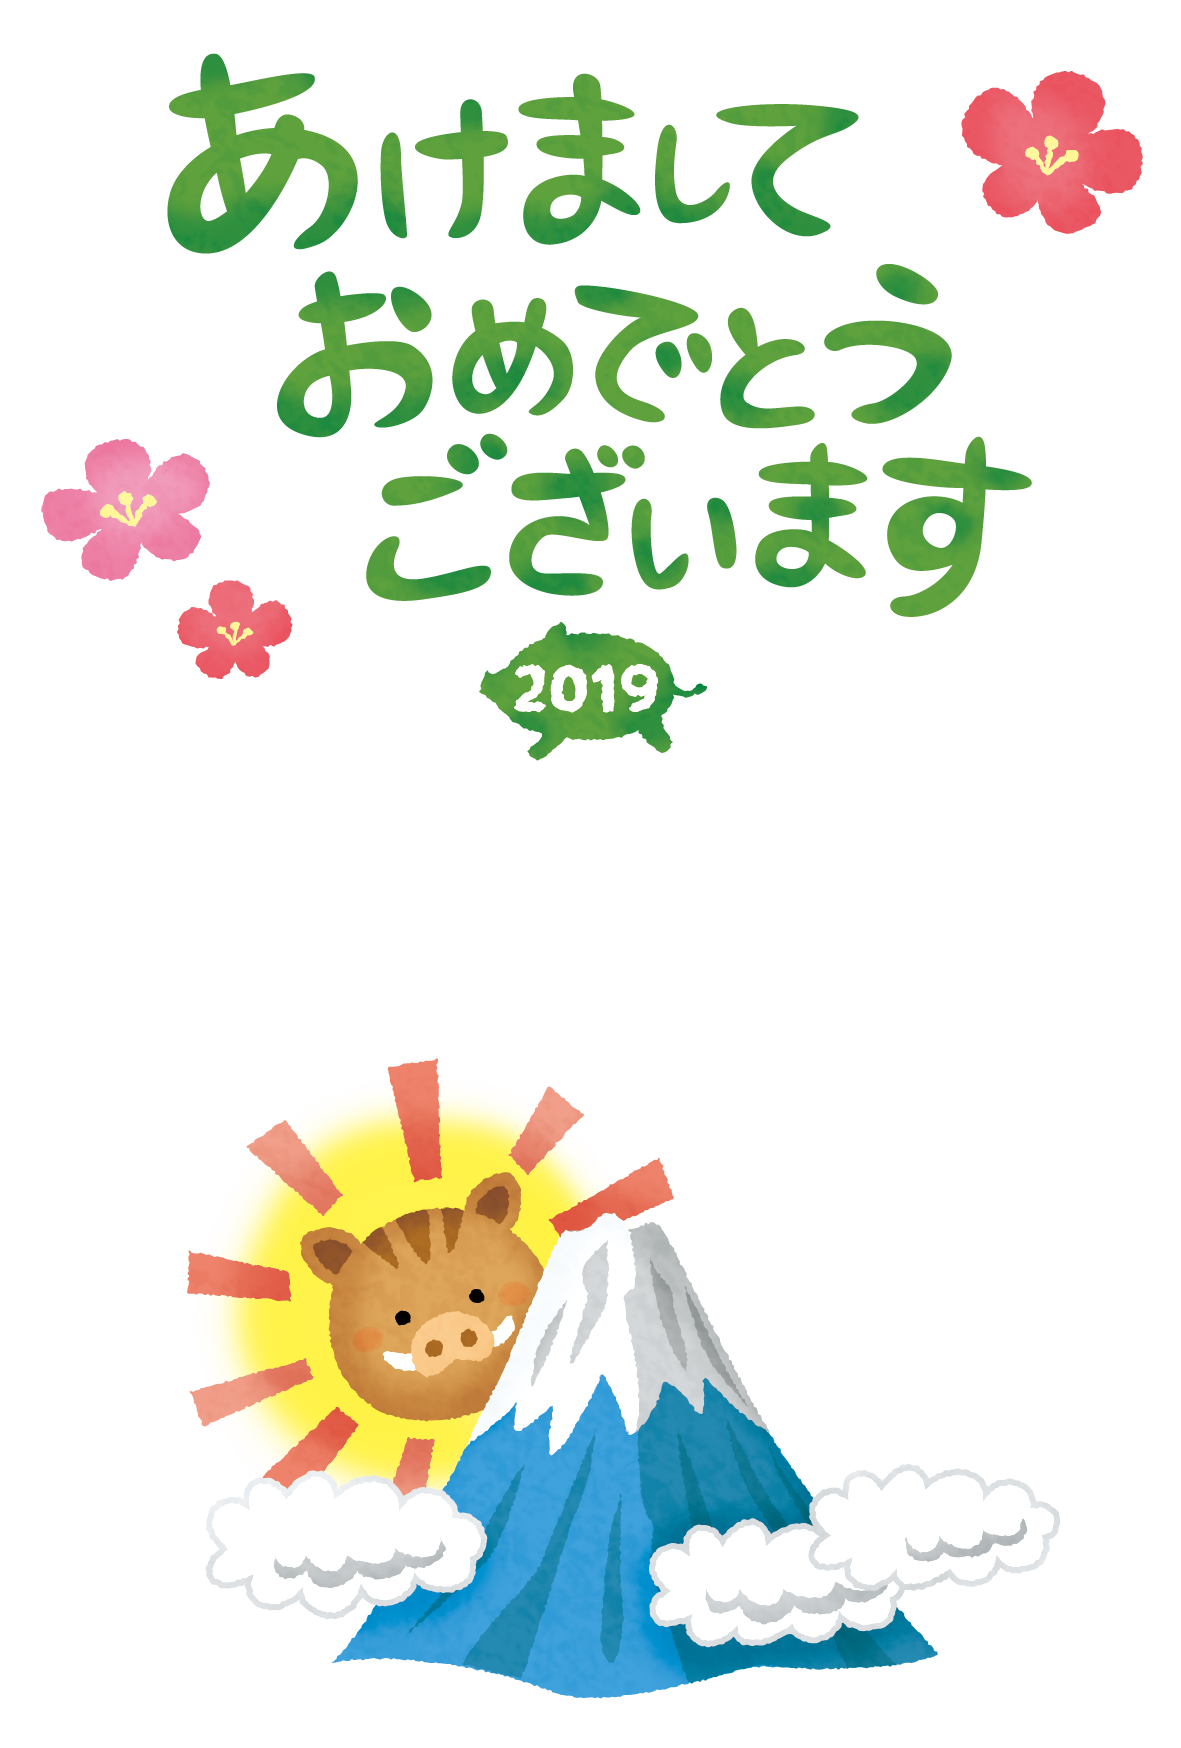 New Year's Card Free Template (Boar and Mount Fuji) 02